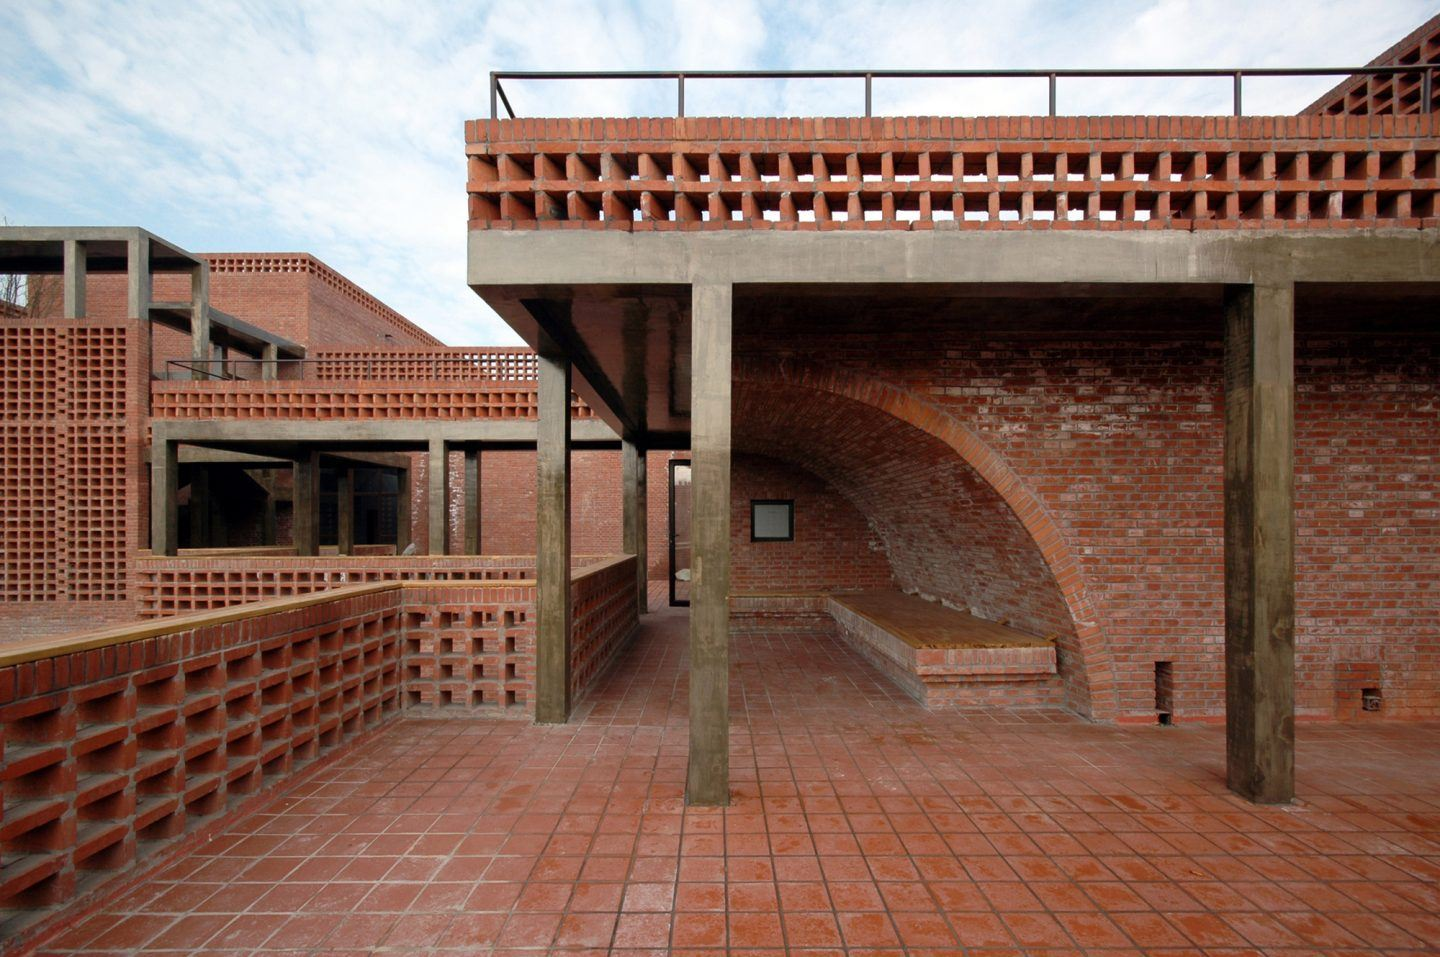 IGNANT-Architecture-Atelier-100s+1-Xiang-Jing-Qu-Guangci-009